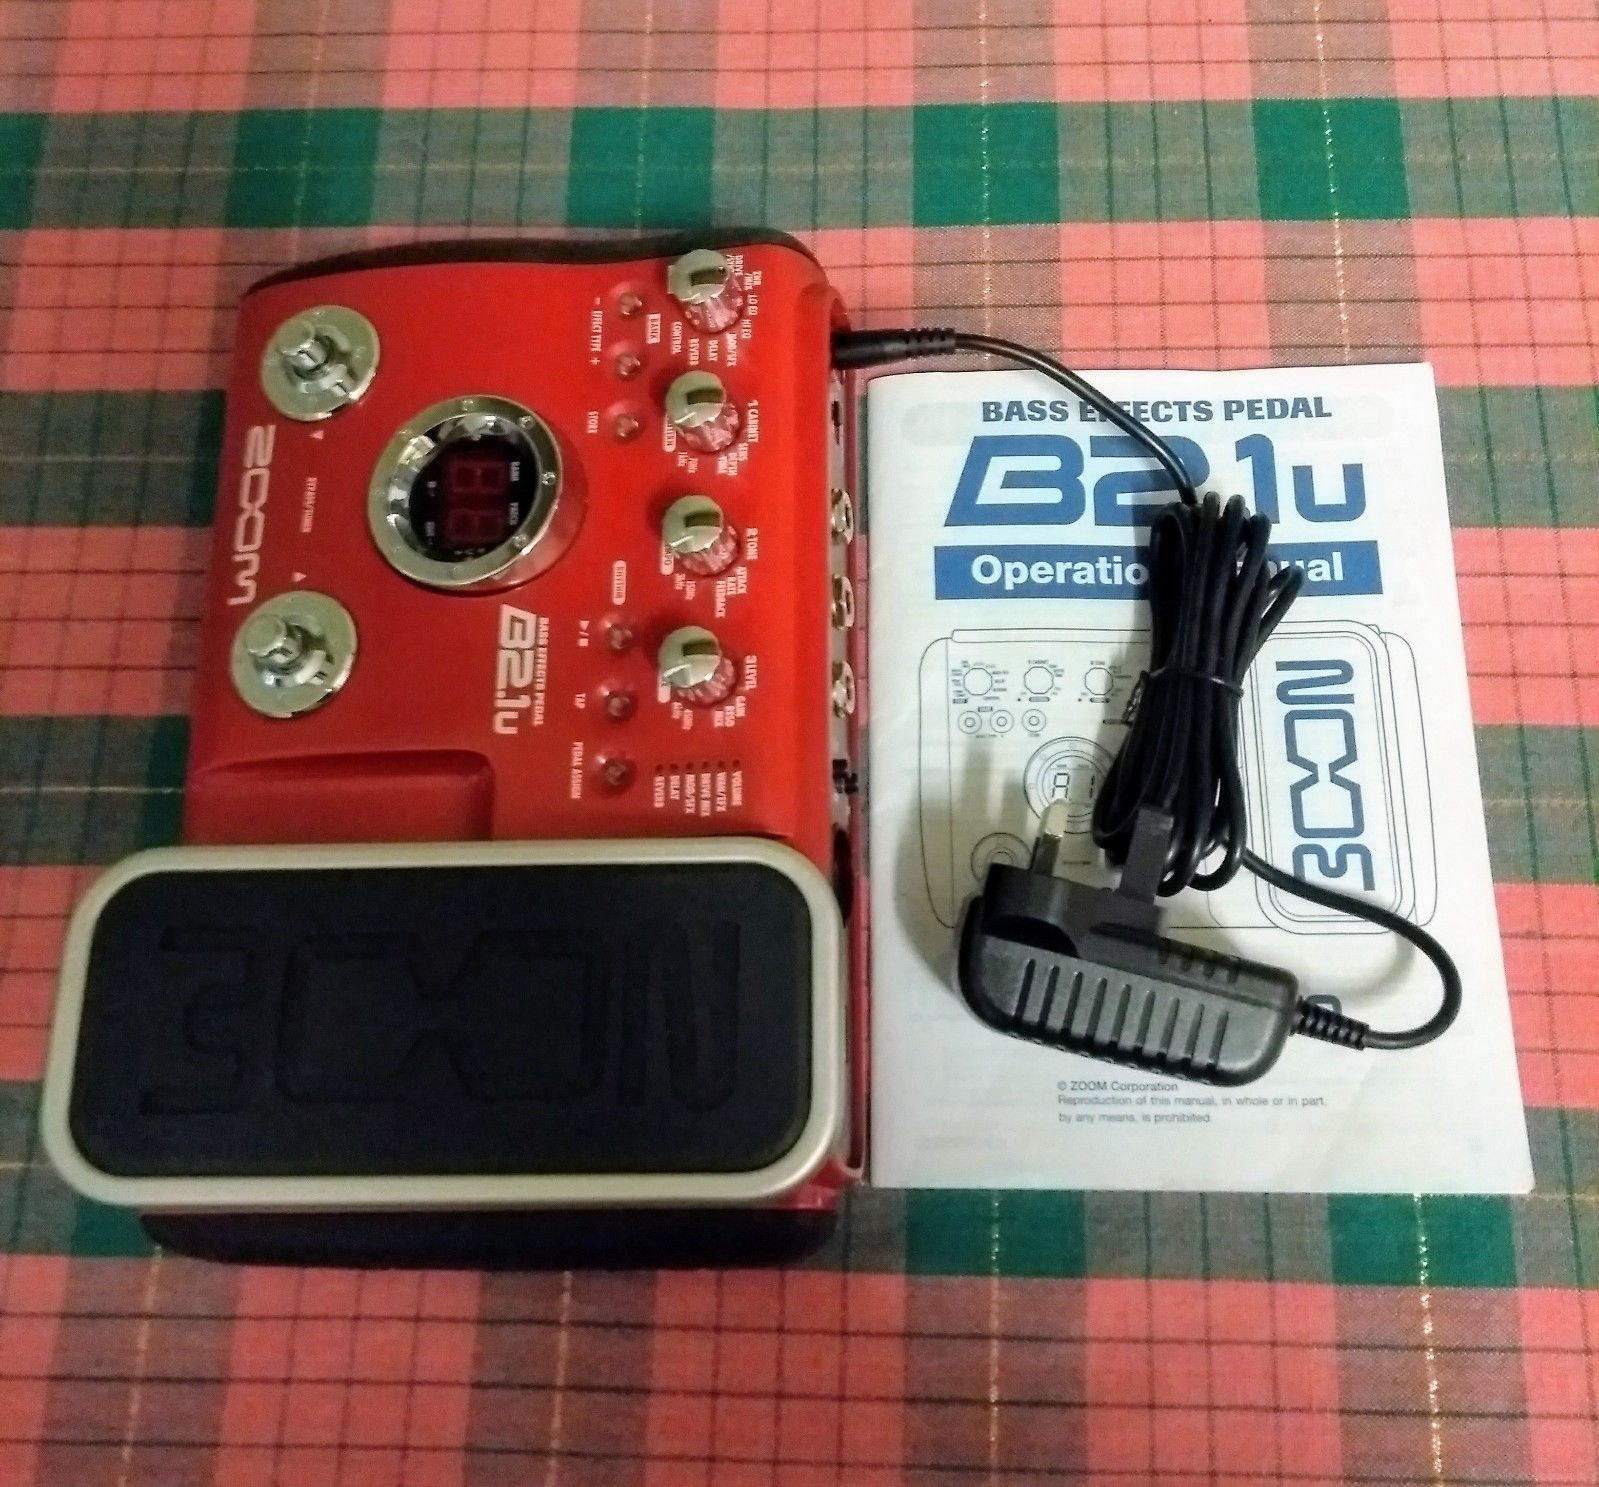 Guitar Effects Pedal, Zoom B2 1u Bass Effects Console Pedal, Red